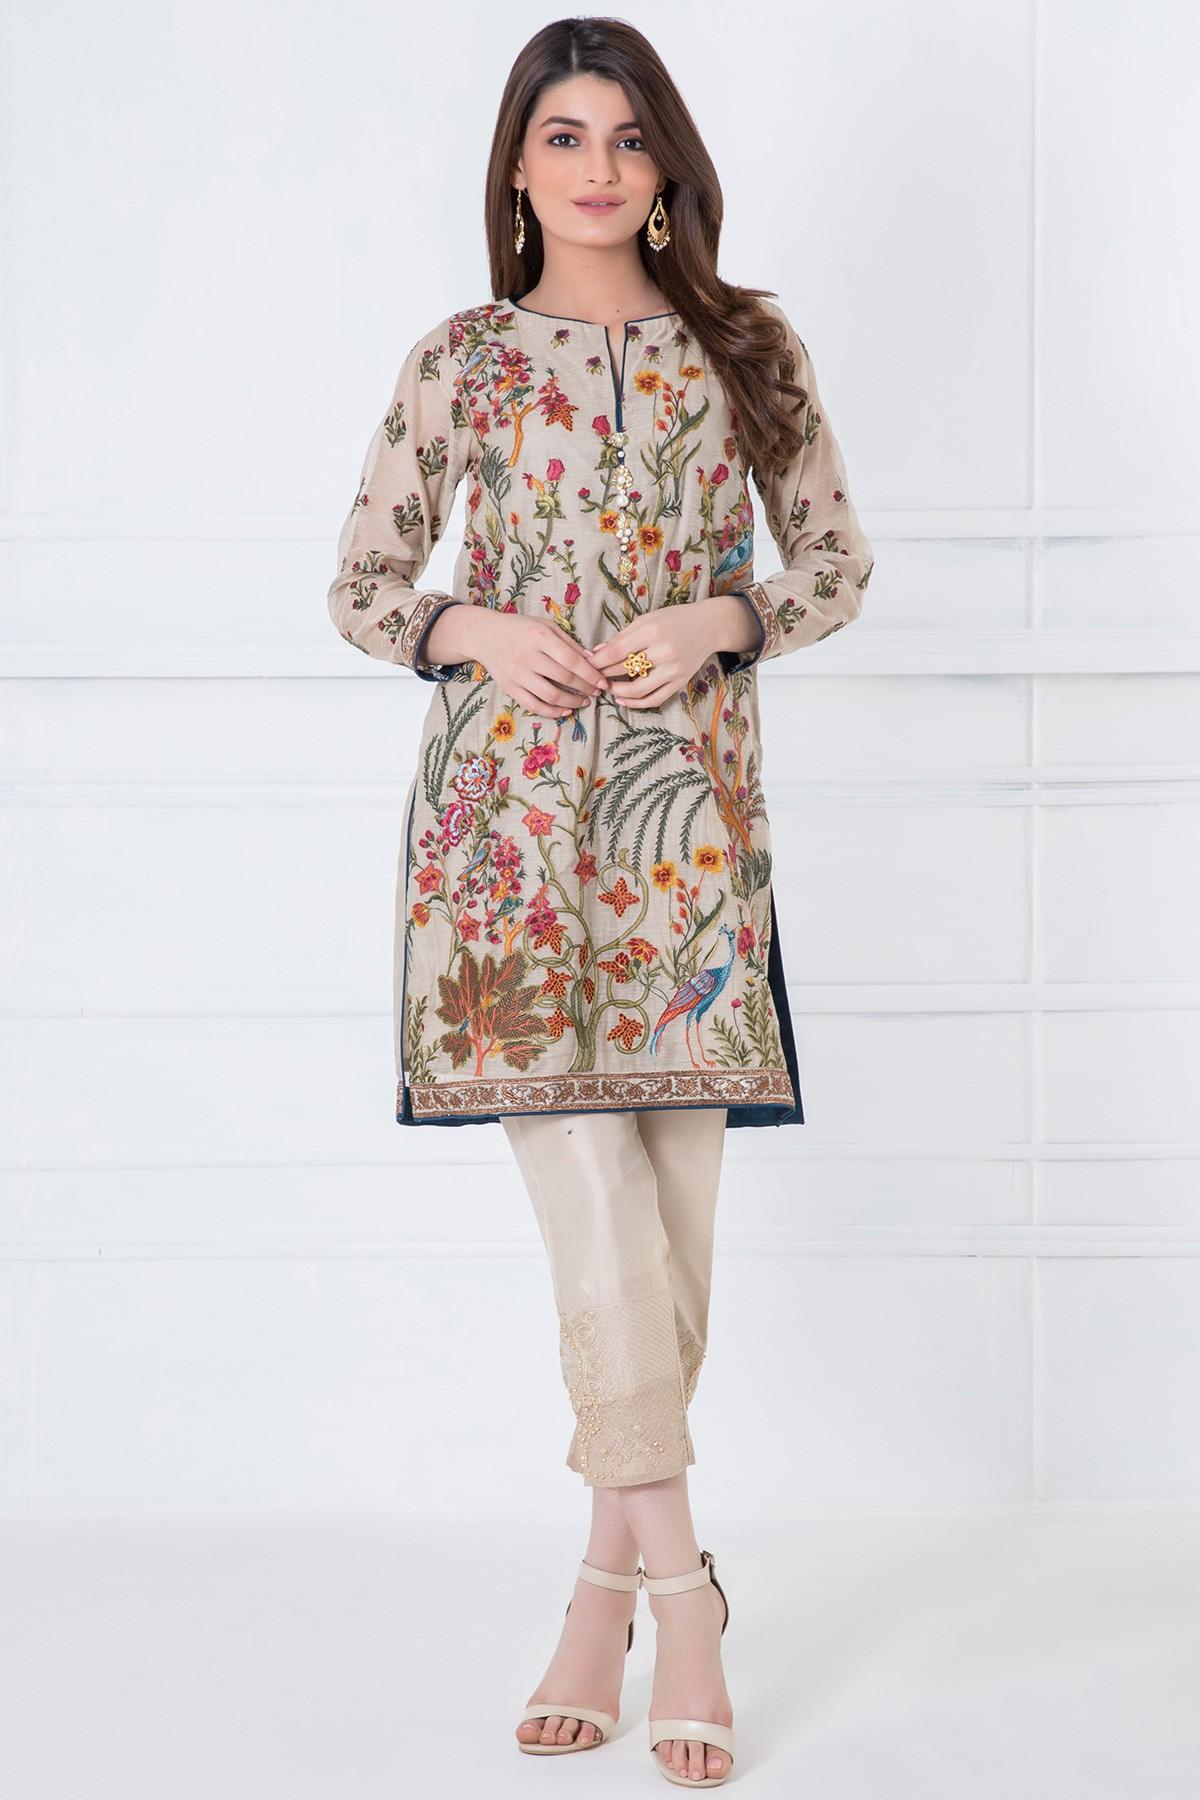 khaadi2 Latest Kurti Designs 2019 From Top 20 Kurti Designers These Days